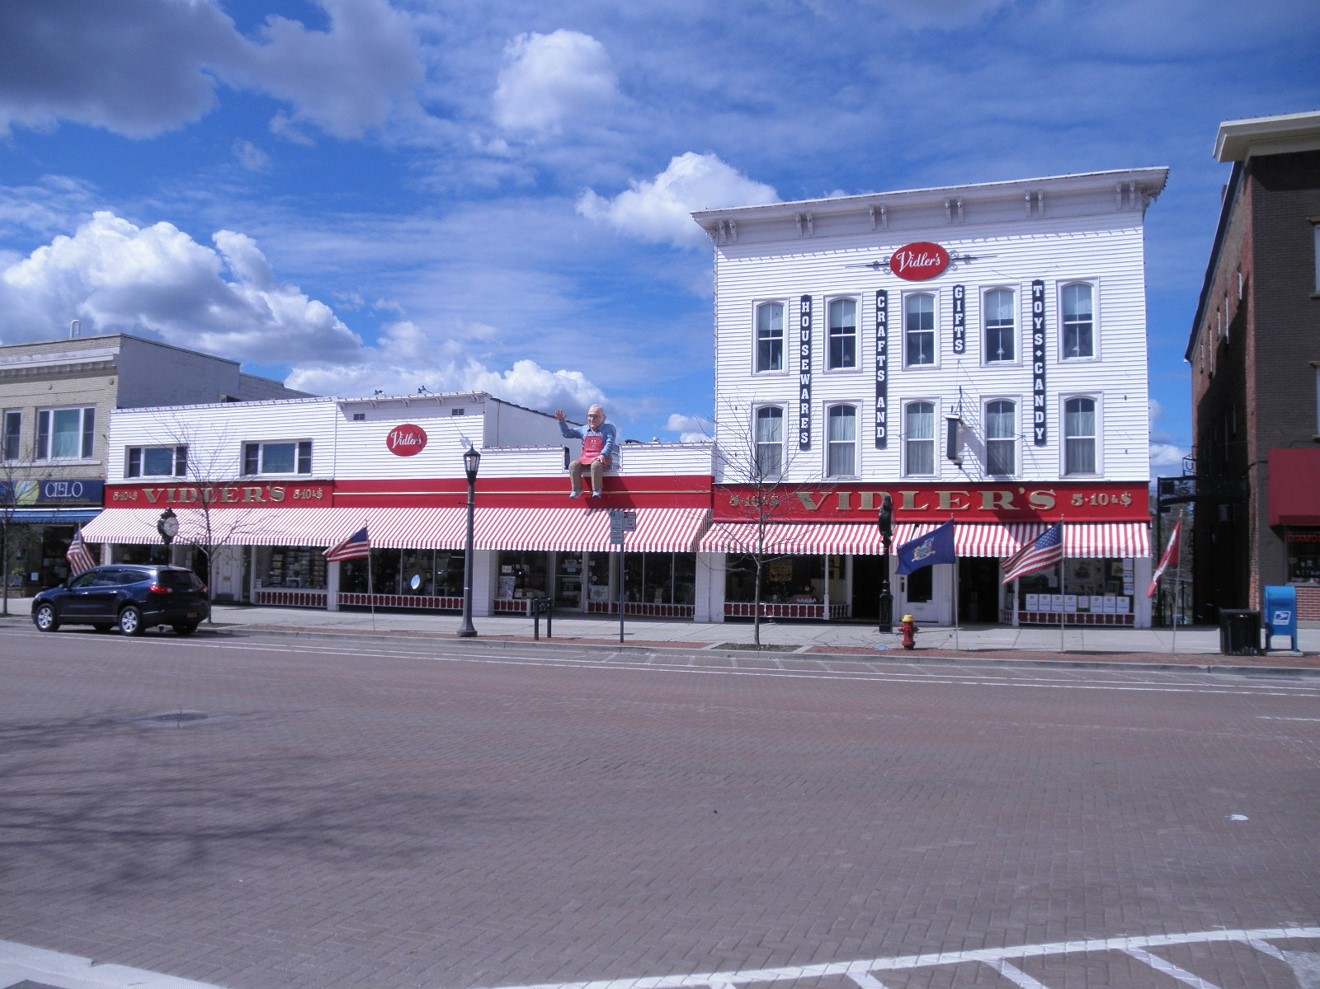 The entire 20,000 sf Vidlers Storefront